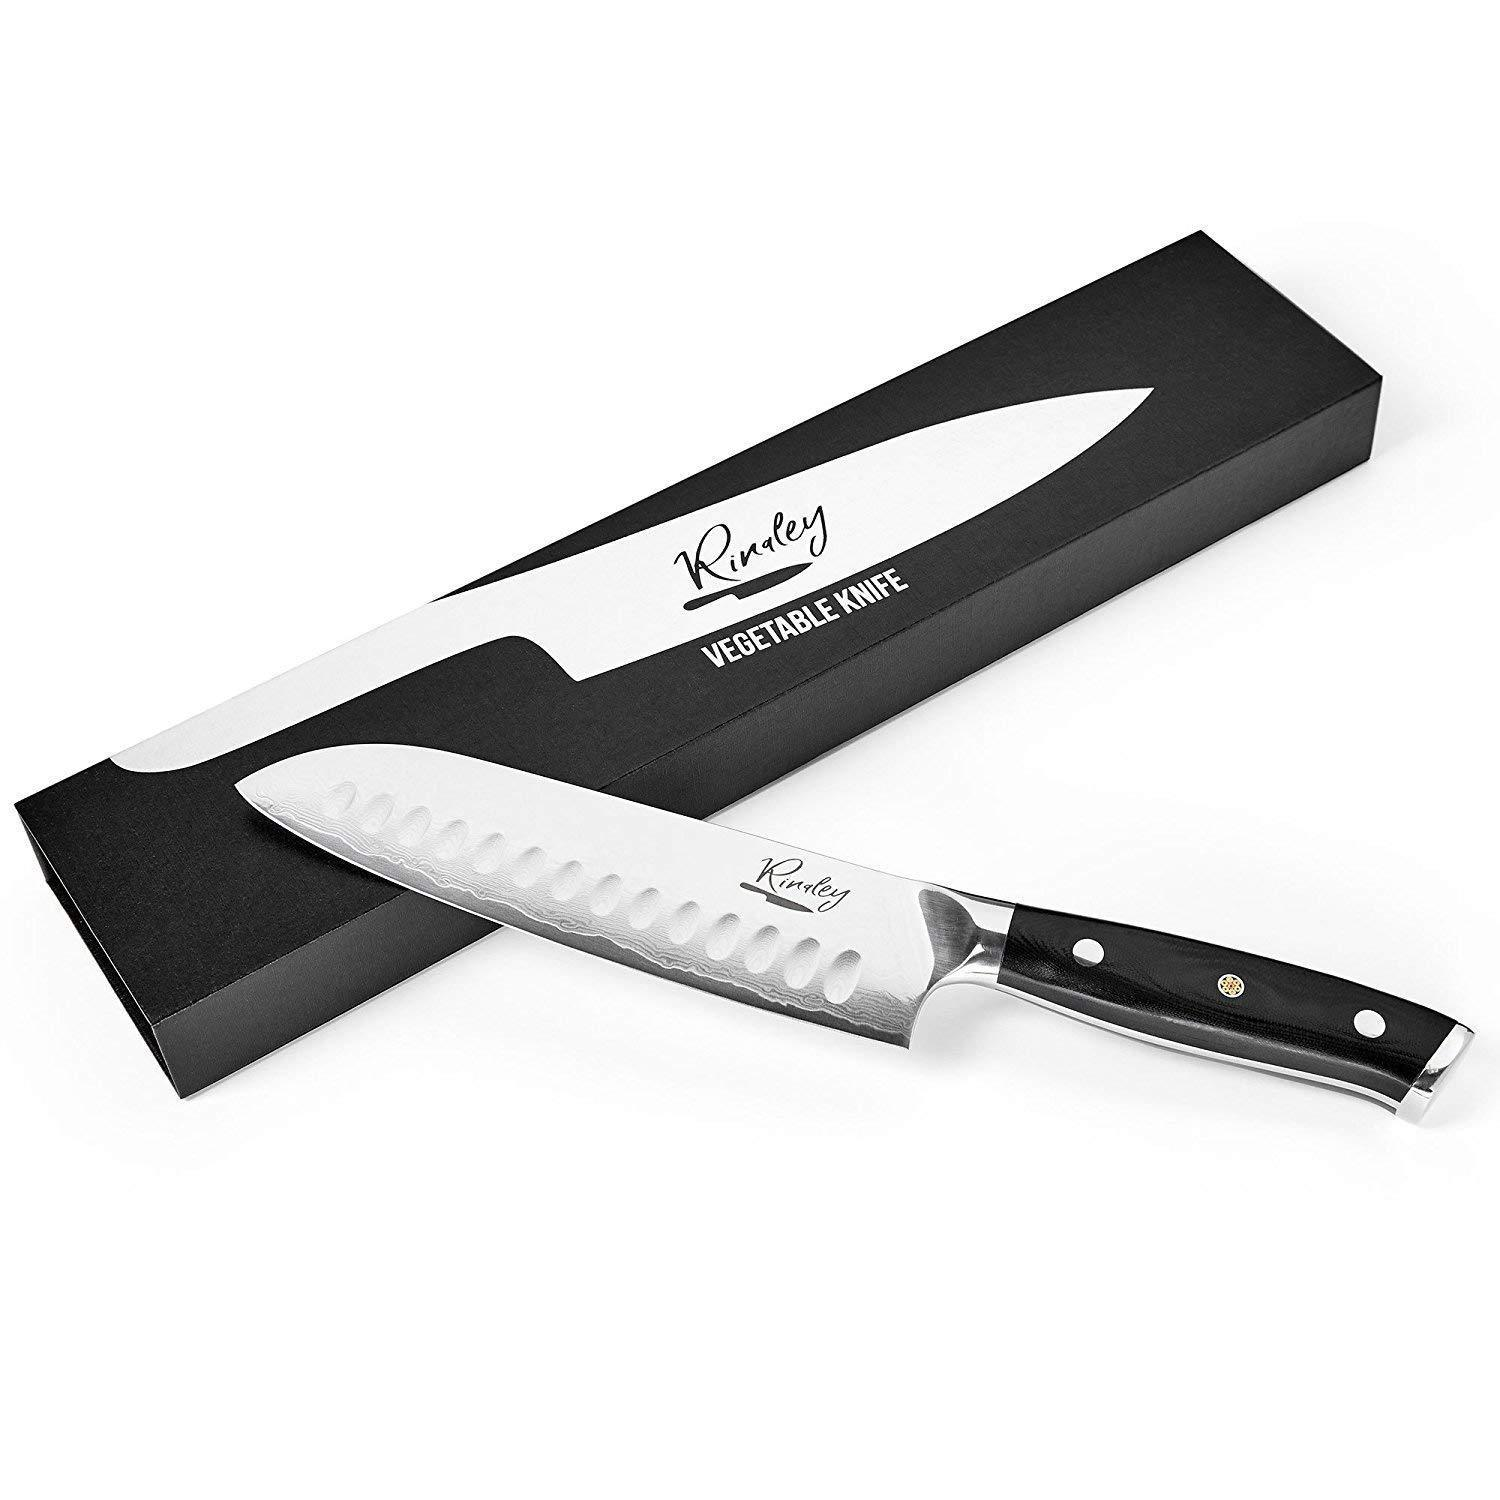 Santoku Vegetable kitchen Knife 7 inch blade Damascus steel Micarta handle